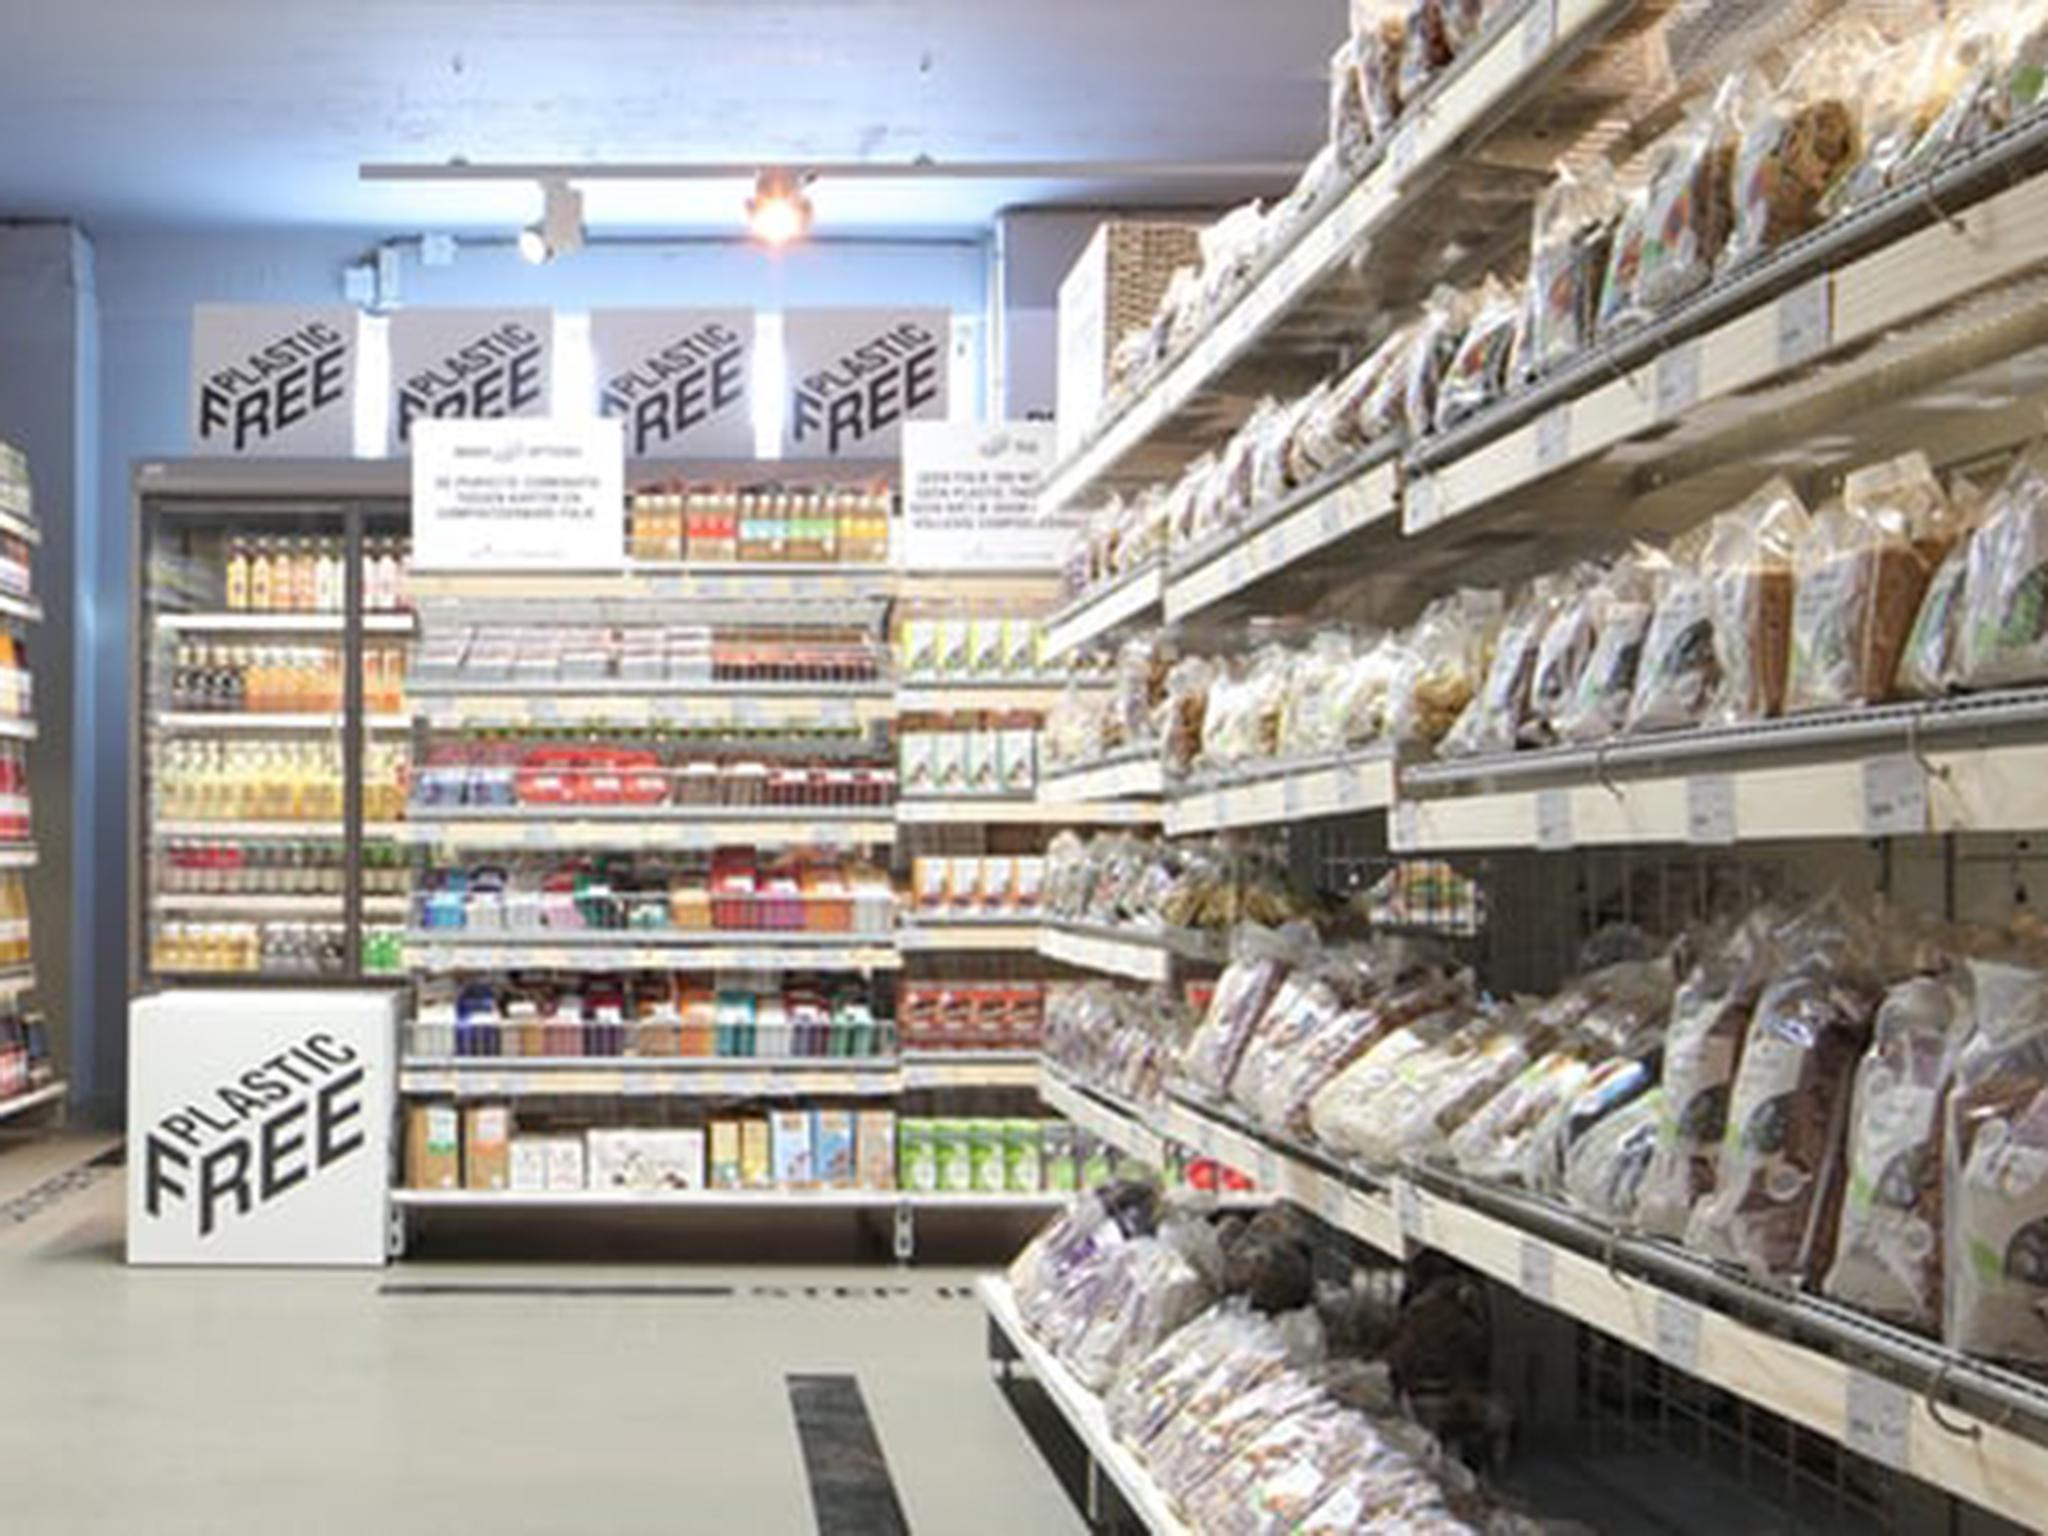 Netherlands opens world's first plastic-free supermarket aisle as UK